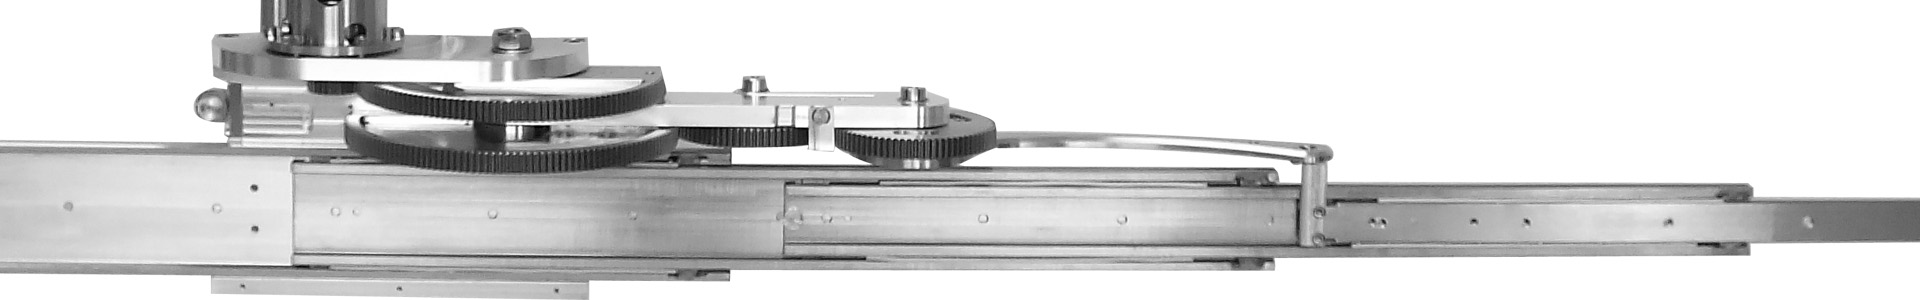 Radial Telescopic Transfer Arm (RTTA)